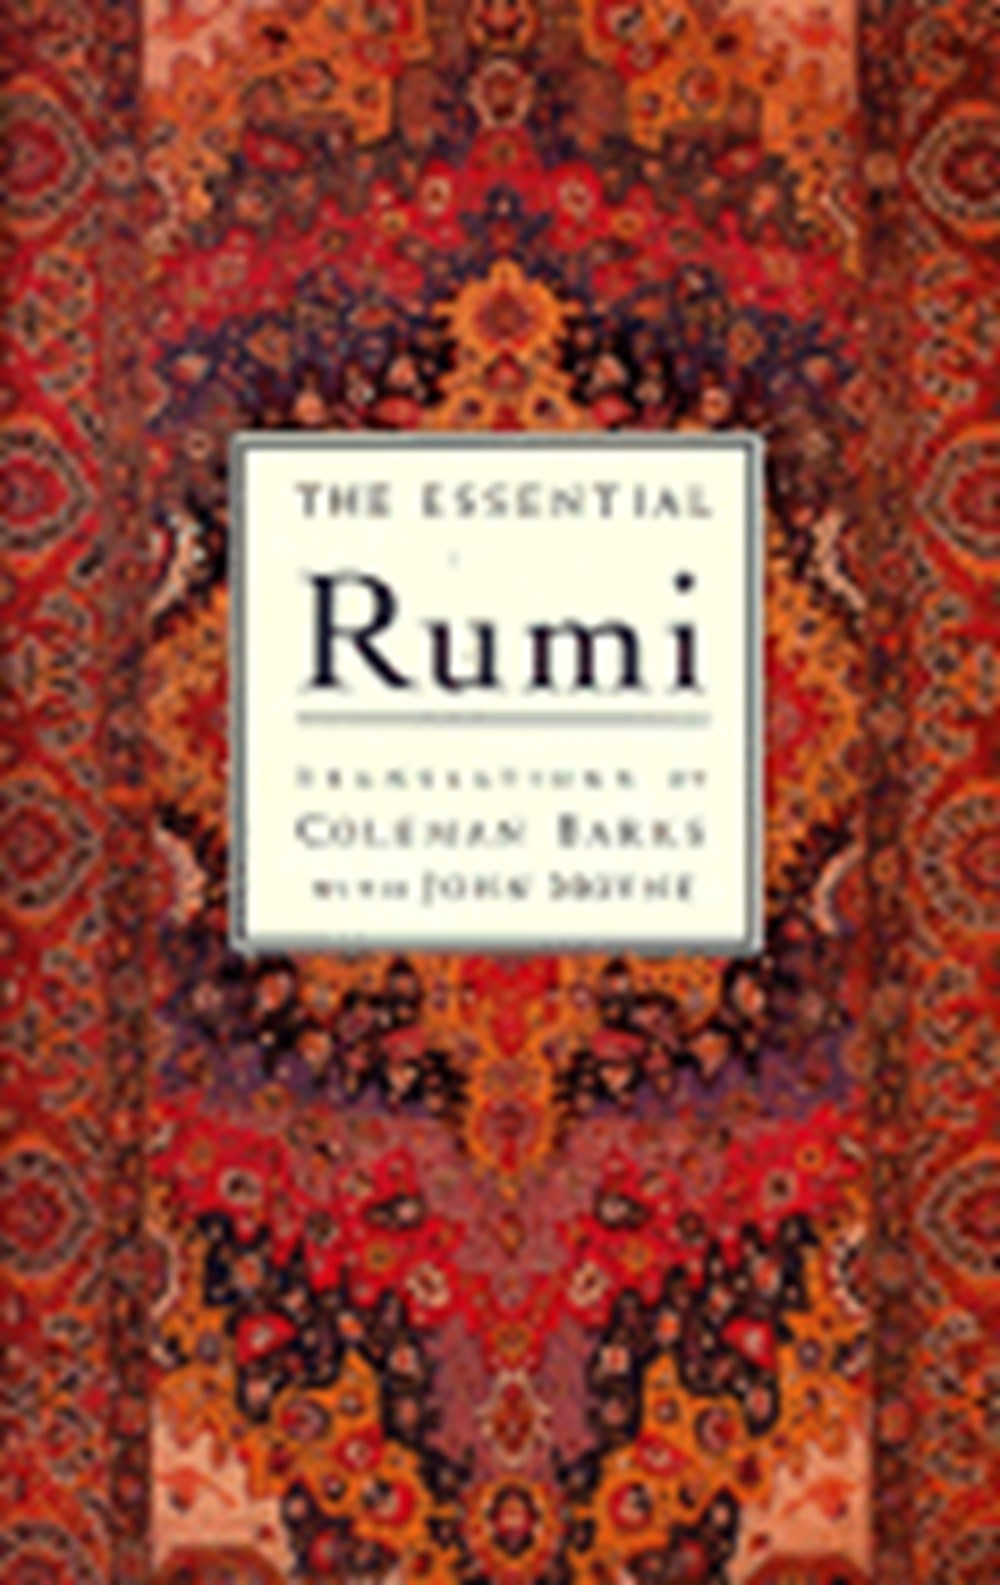 Essential Rumi - Reissue New Expanded Edition